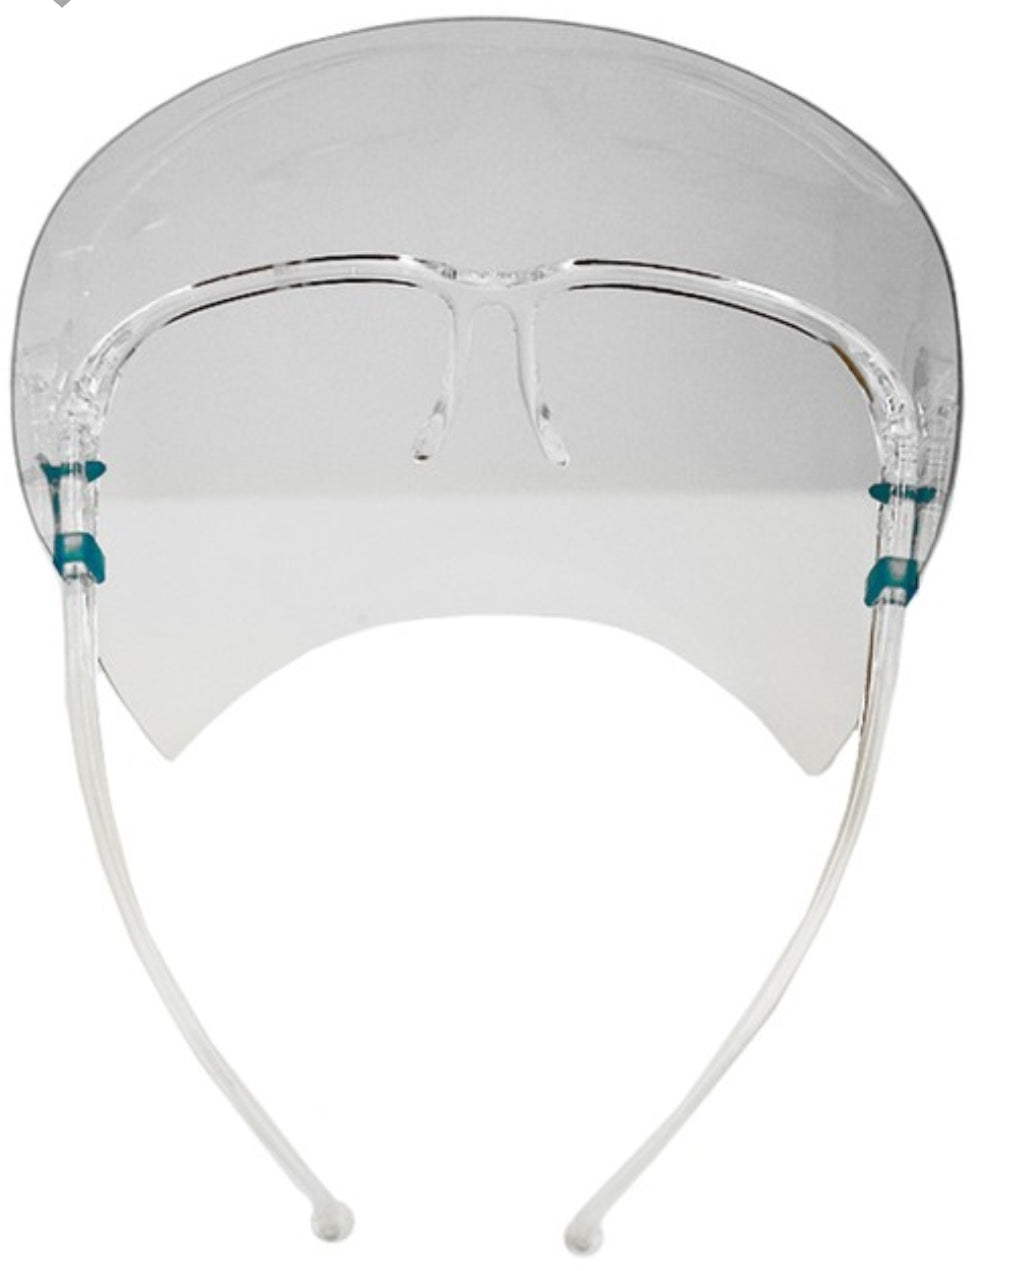 Double-Sided Face Shield Protector Clear Face Mask